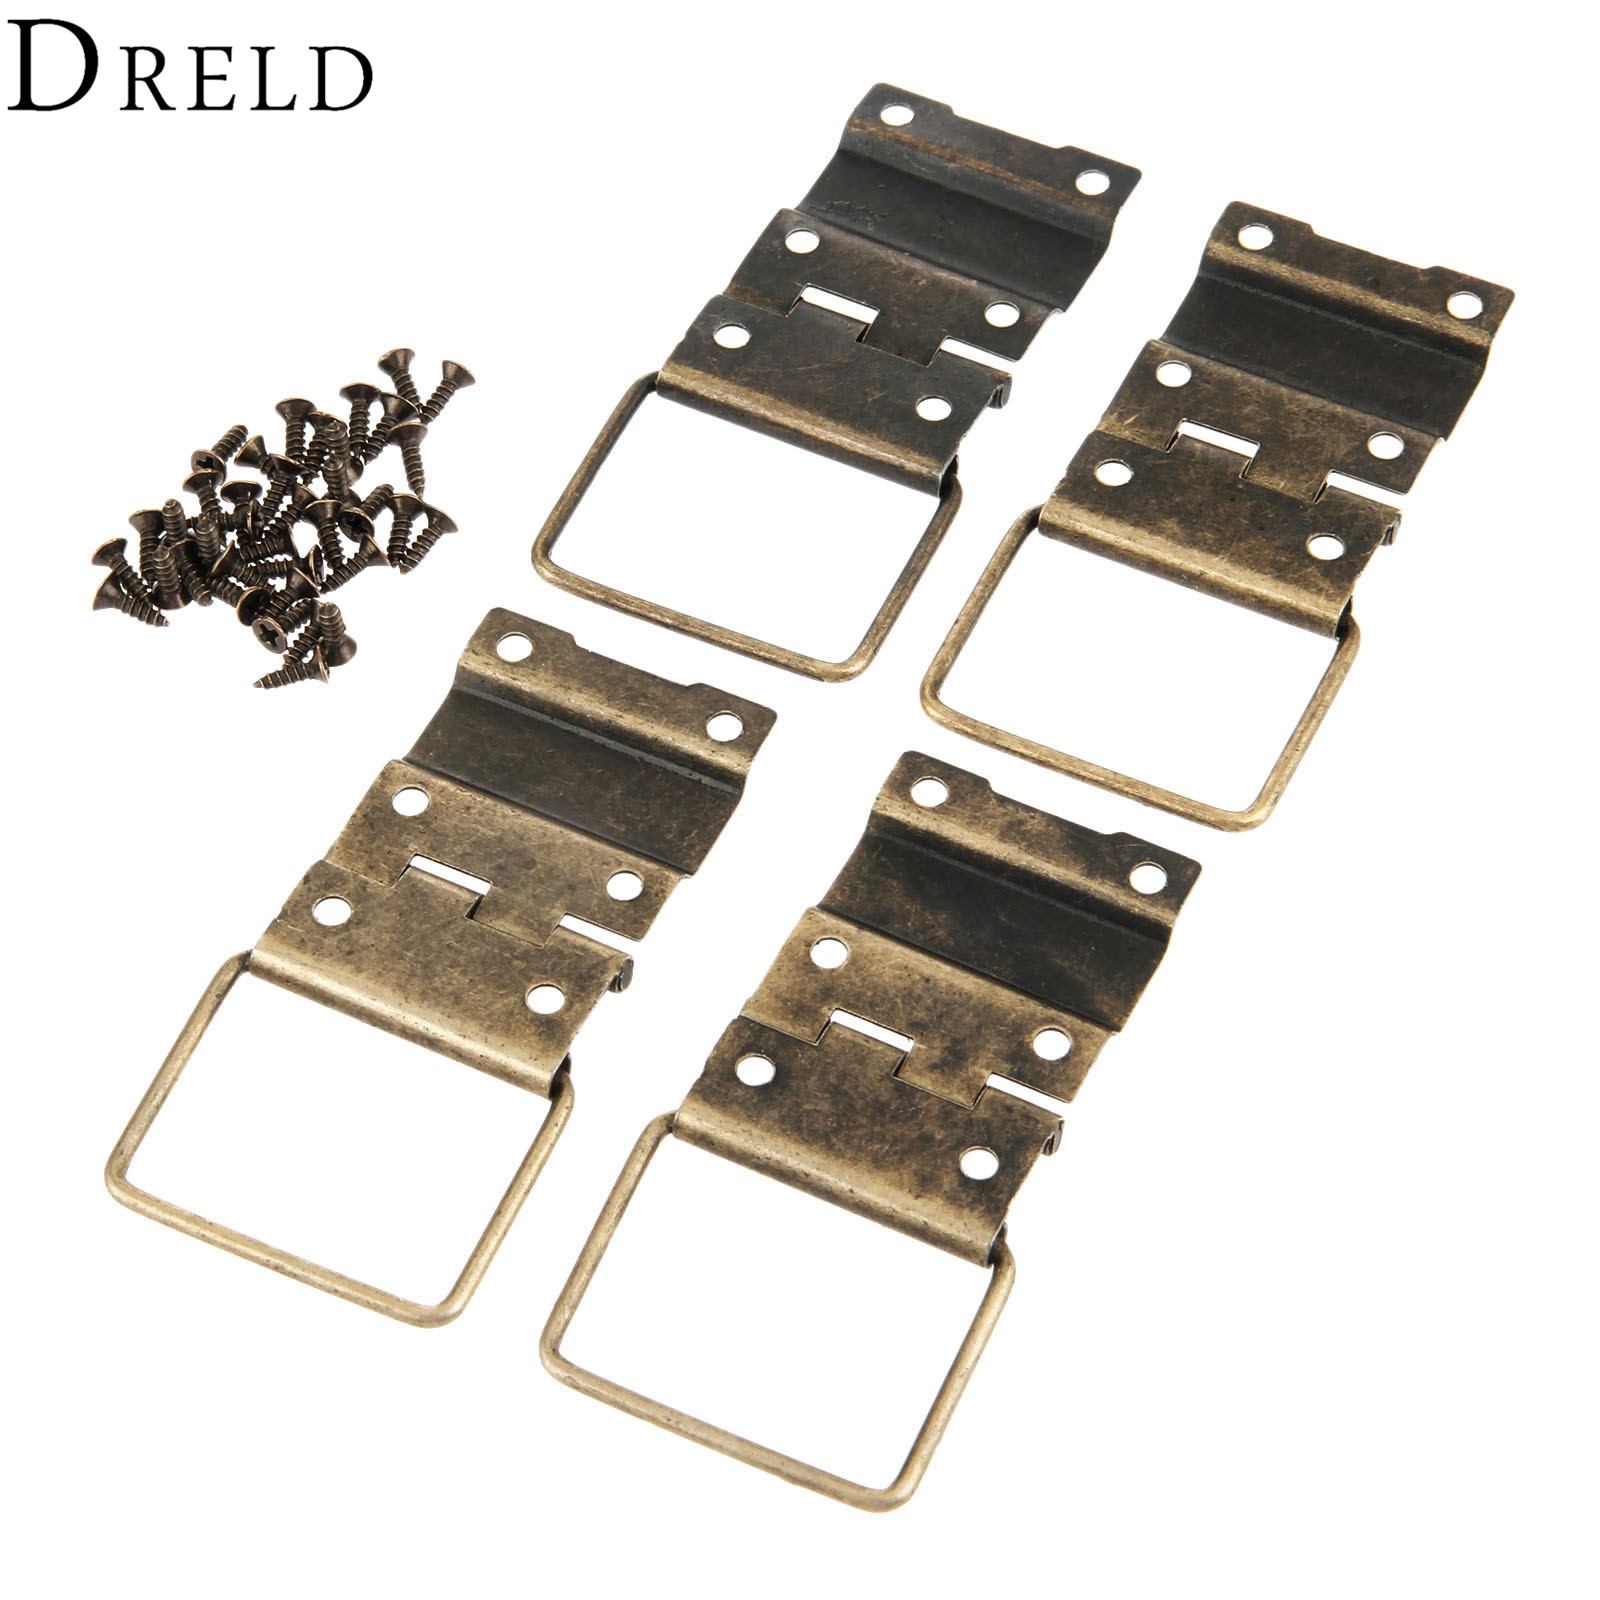 DRELD 4Pcs 29*45mm Antique Cabinet Hinges Furniture Accessories Door Hinges Drawer Jewellery Box Hinges For Furniture Hardware 1 pair 4 inch stainless steel door hinges wood doors cabinet drawer box interior hinge furniture hardware accessories m25